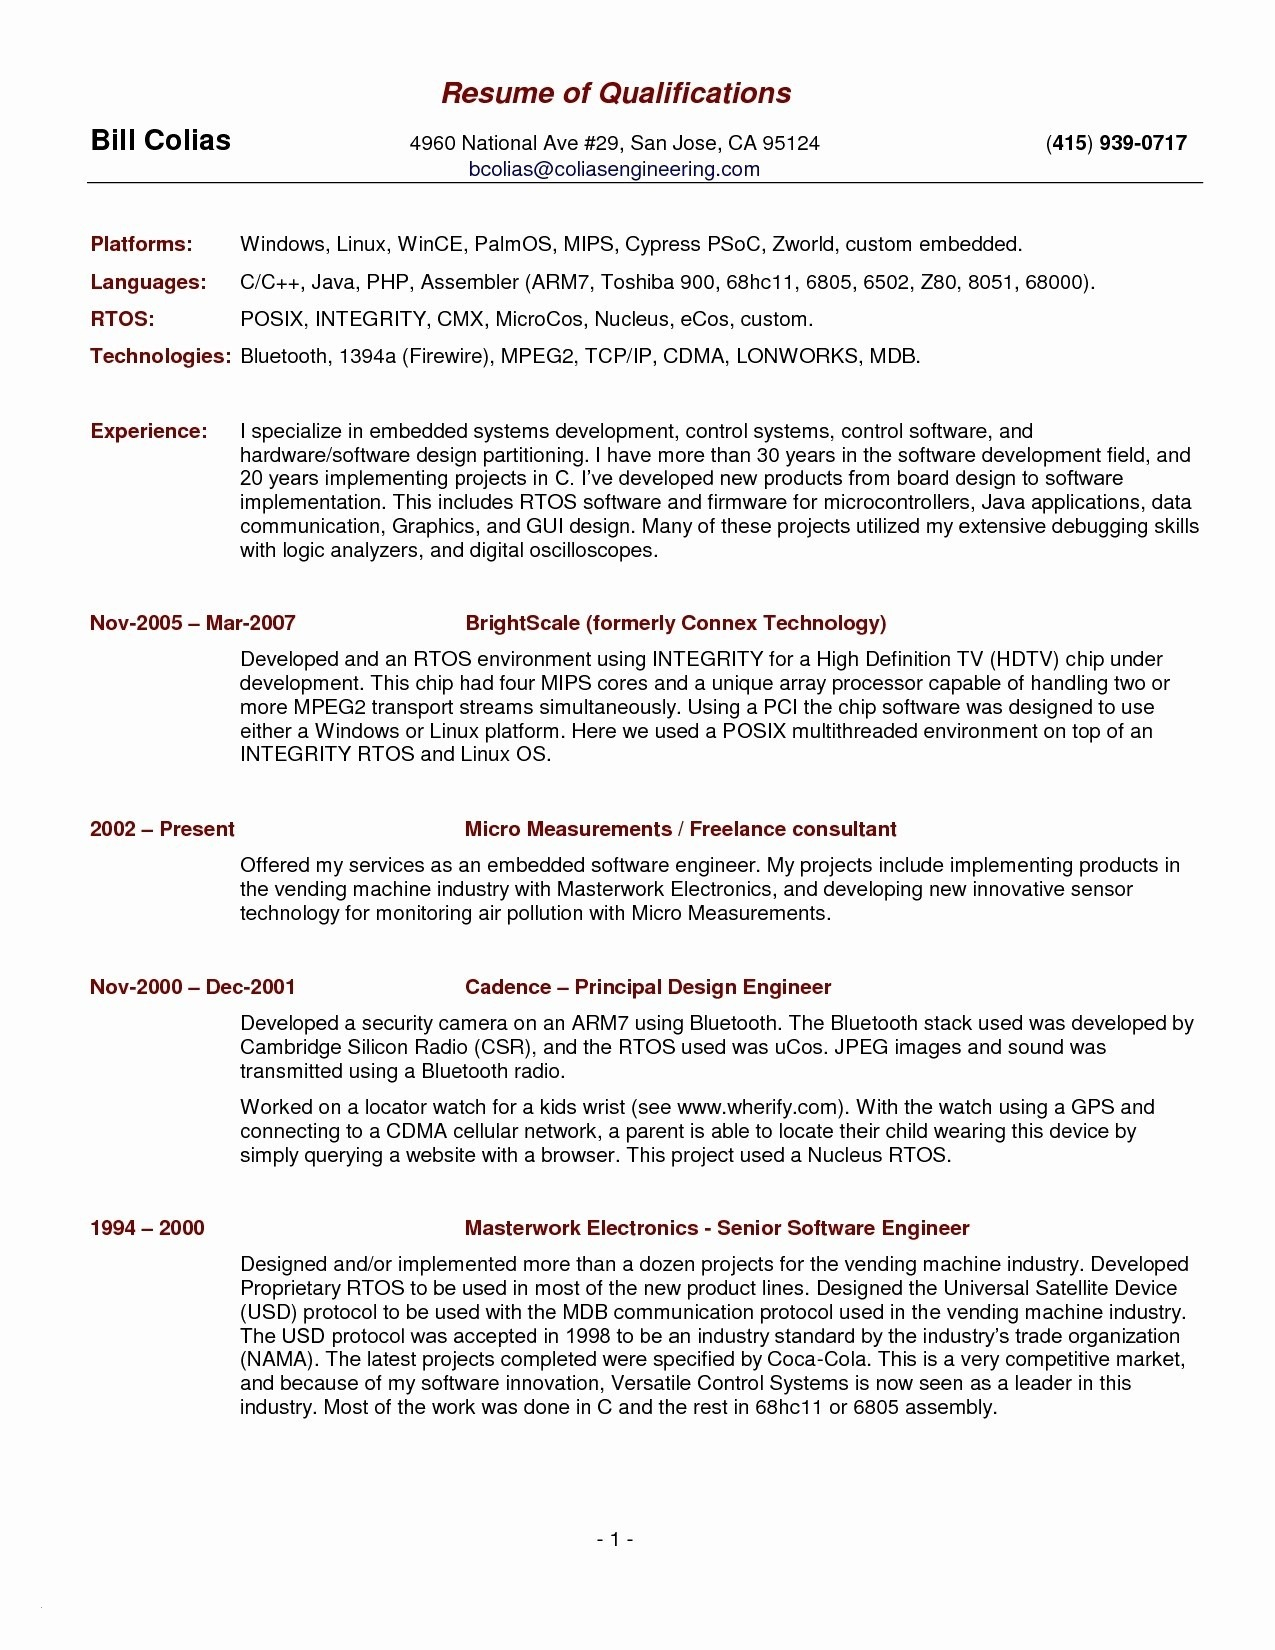 free engineering resume template Collection-Resume Templates Pdf Free Inspirational Lovely Pr Resume Template Elegant Dictionary Template 0d Archives 8-j